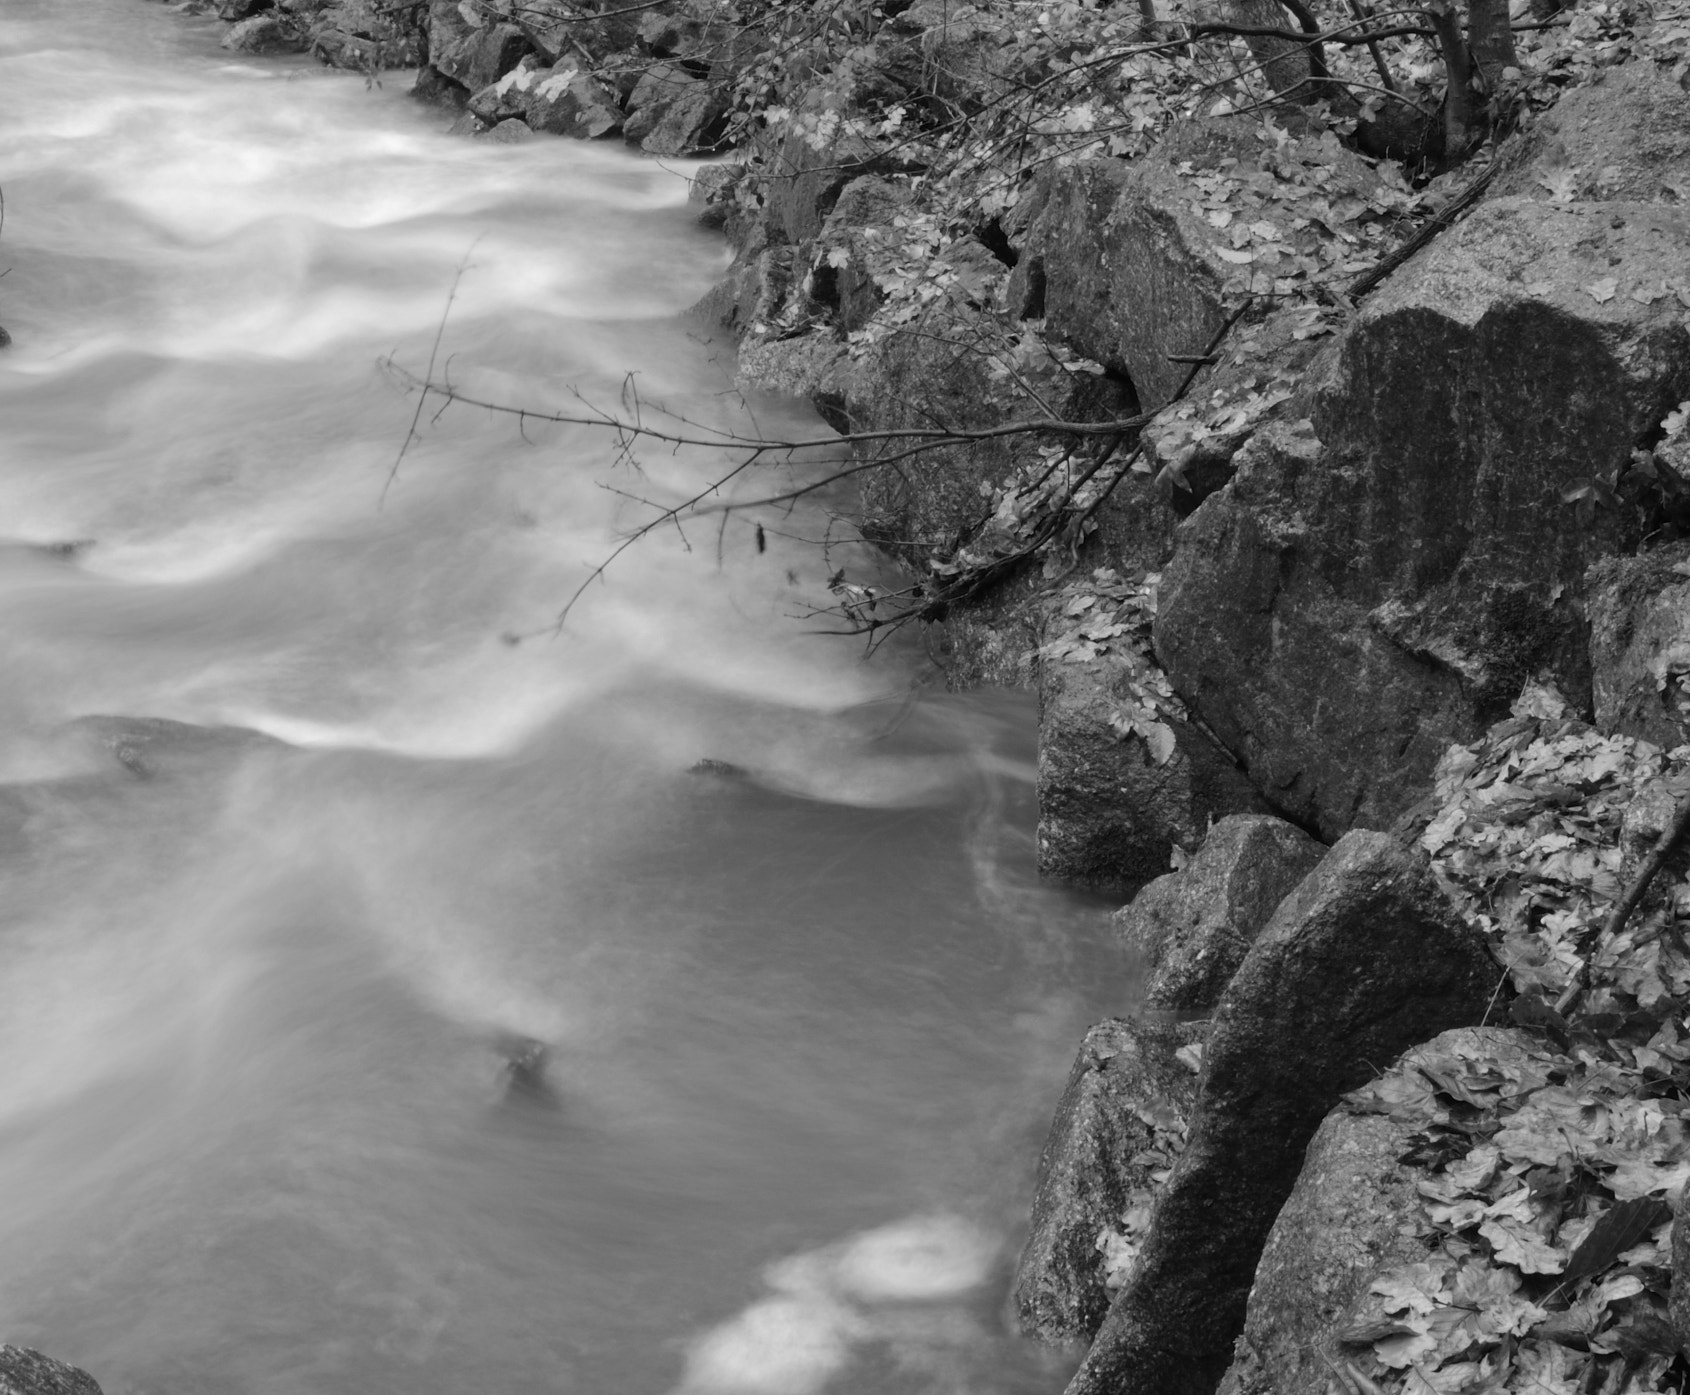 Photograph Flowing by miguel winterpacht on 500px